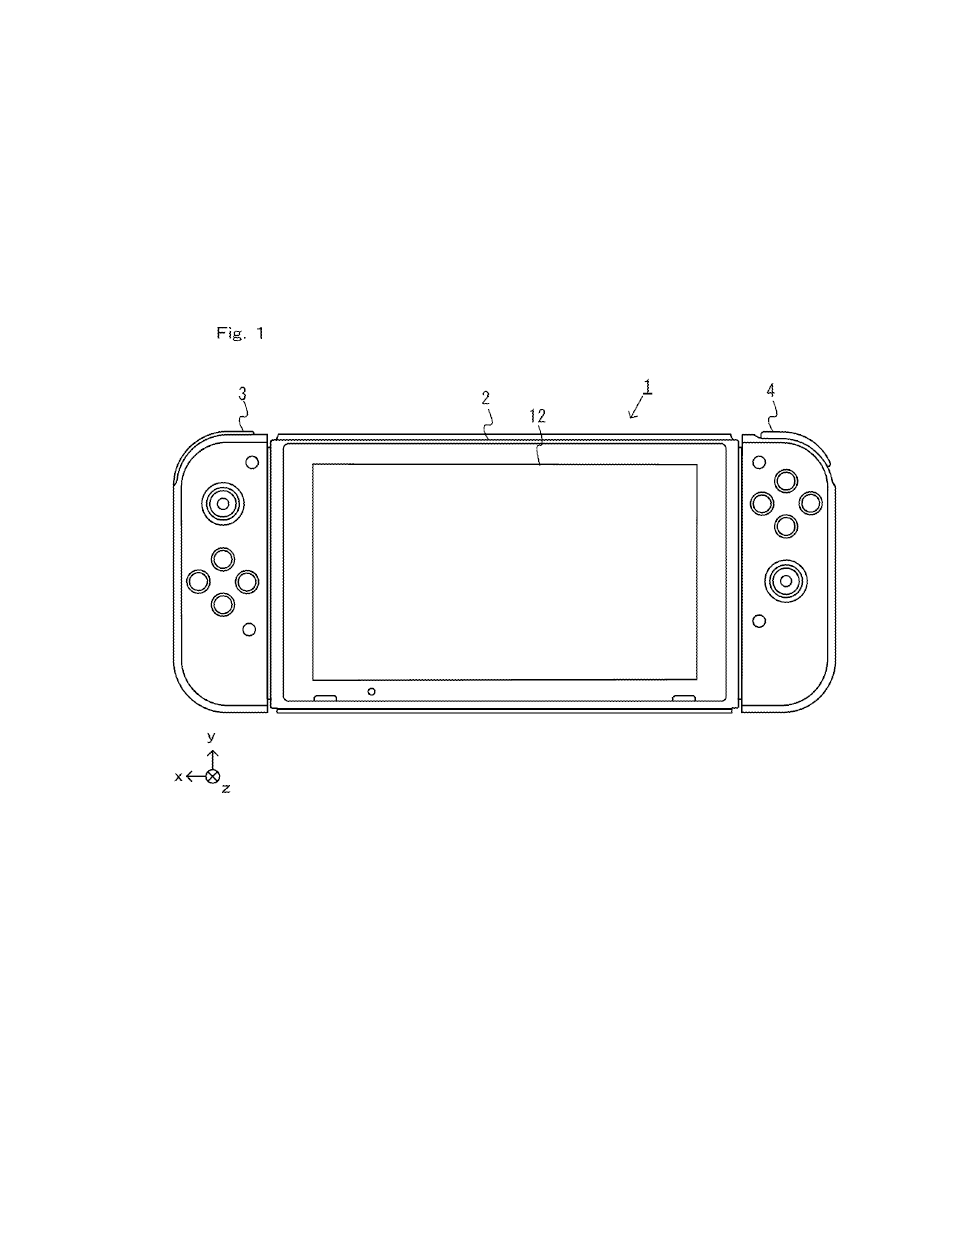 New Switch Patents Hmd Vr Touchscreen Gyro Much More Nintendo Everything